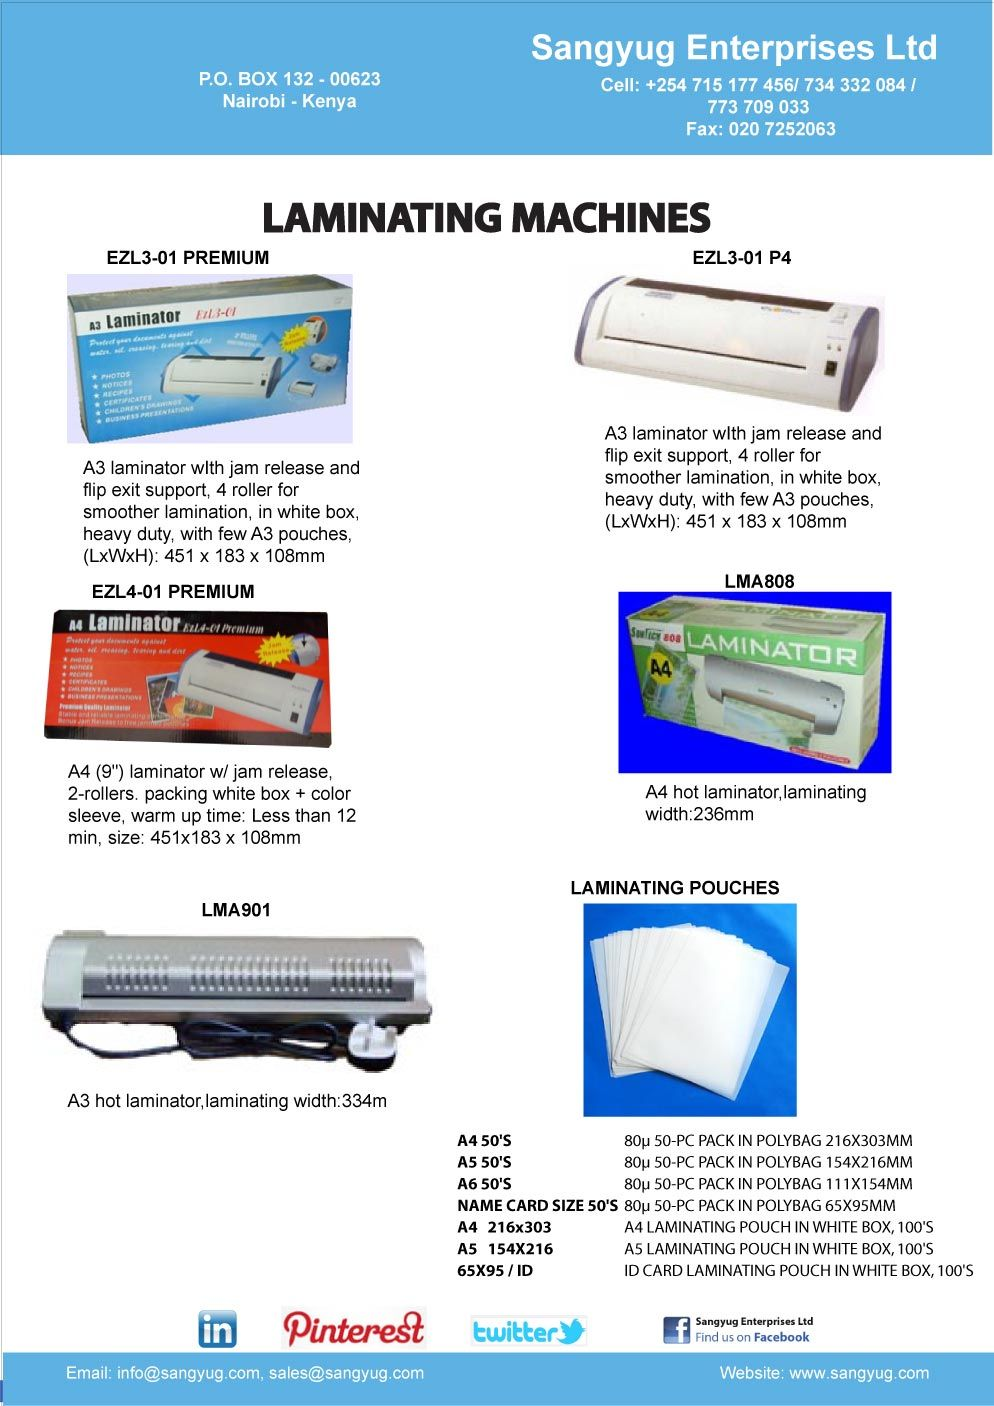 What About Document Protection Get A Laminating Machine And Ensure That Your Documents Are Well Laminated And Protect Laminators Weather Conditions Protection